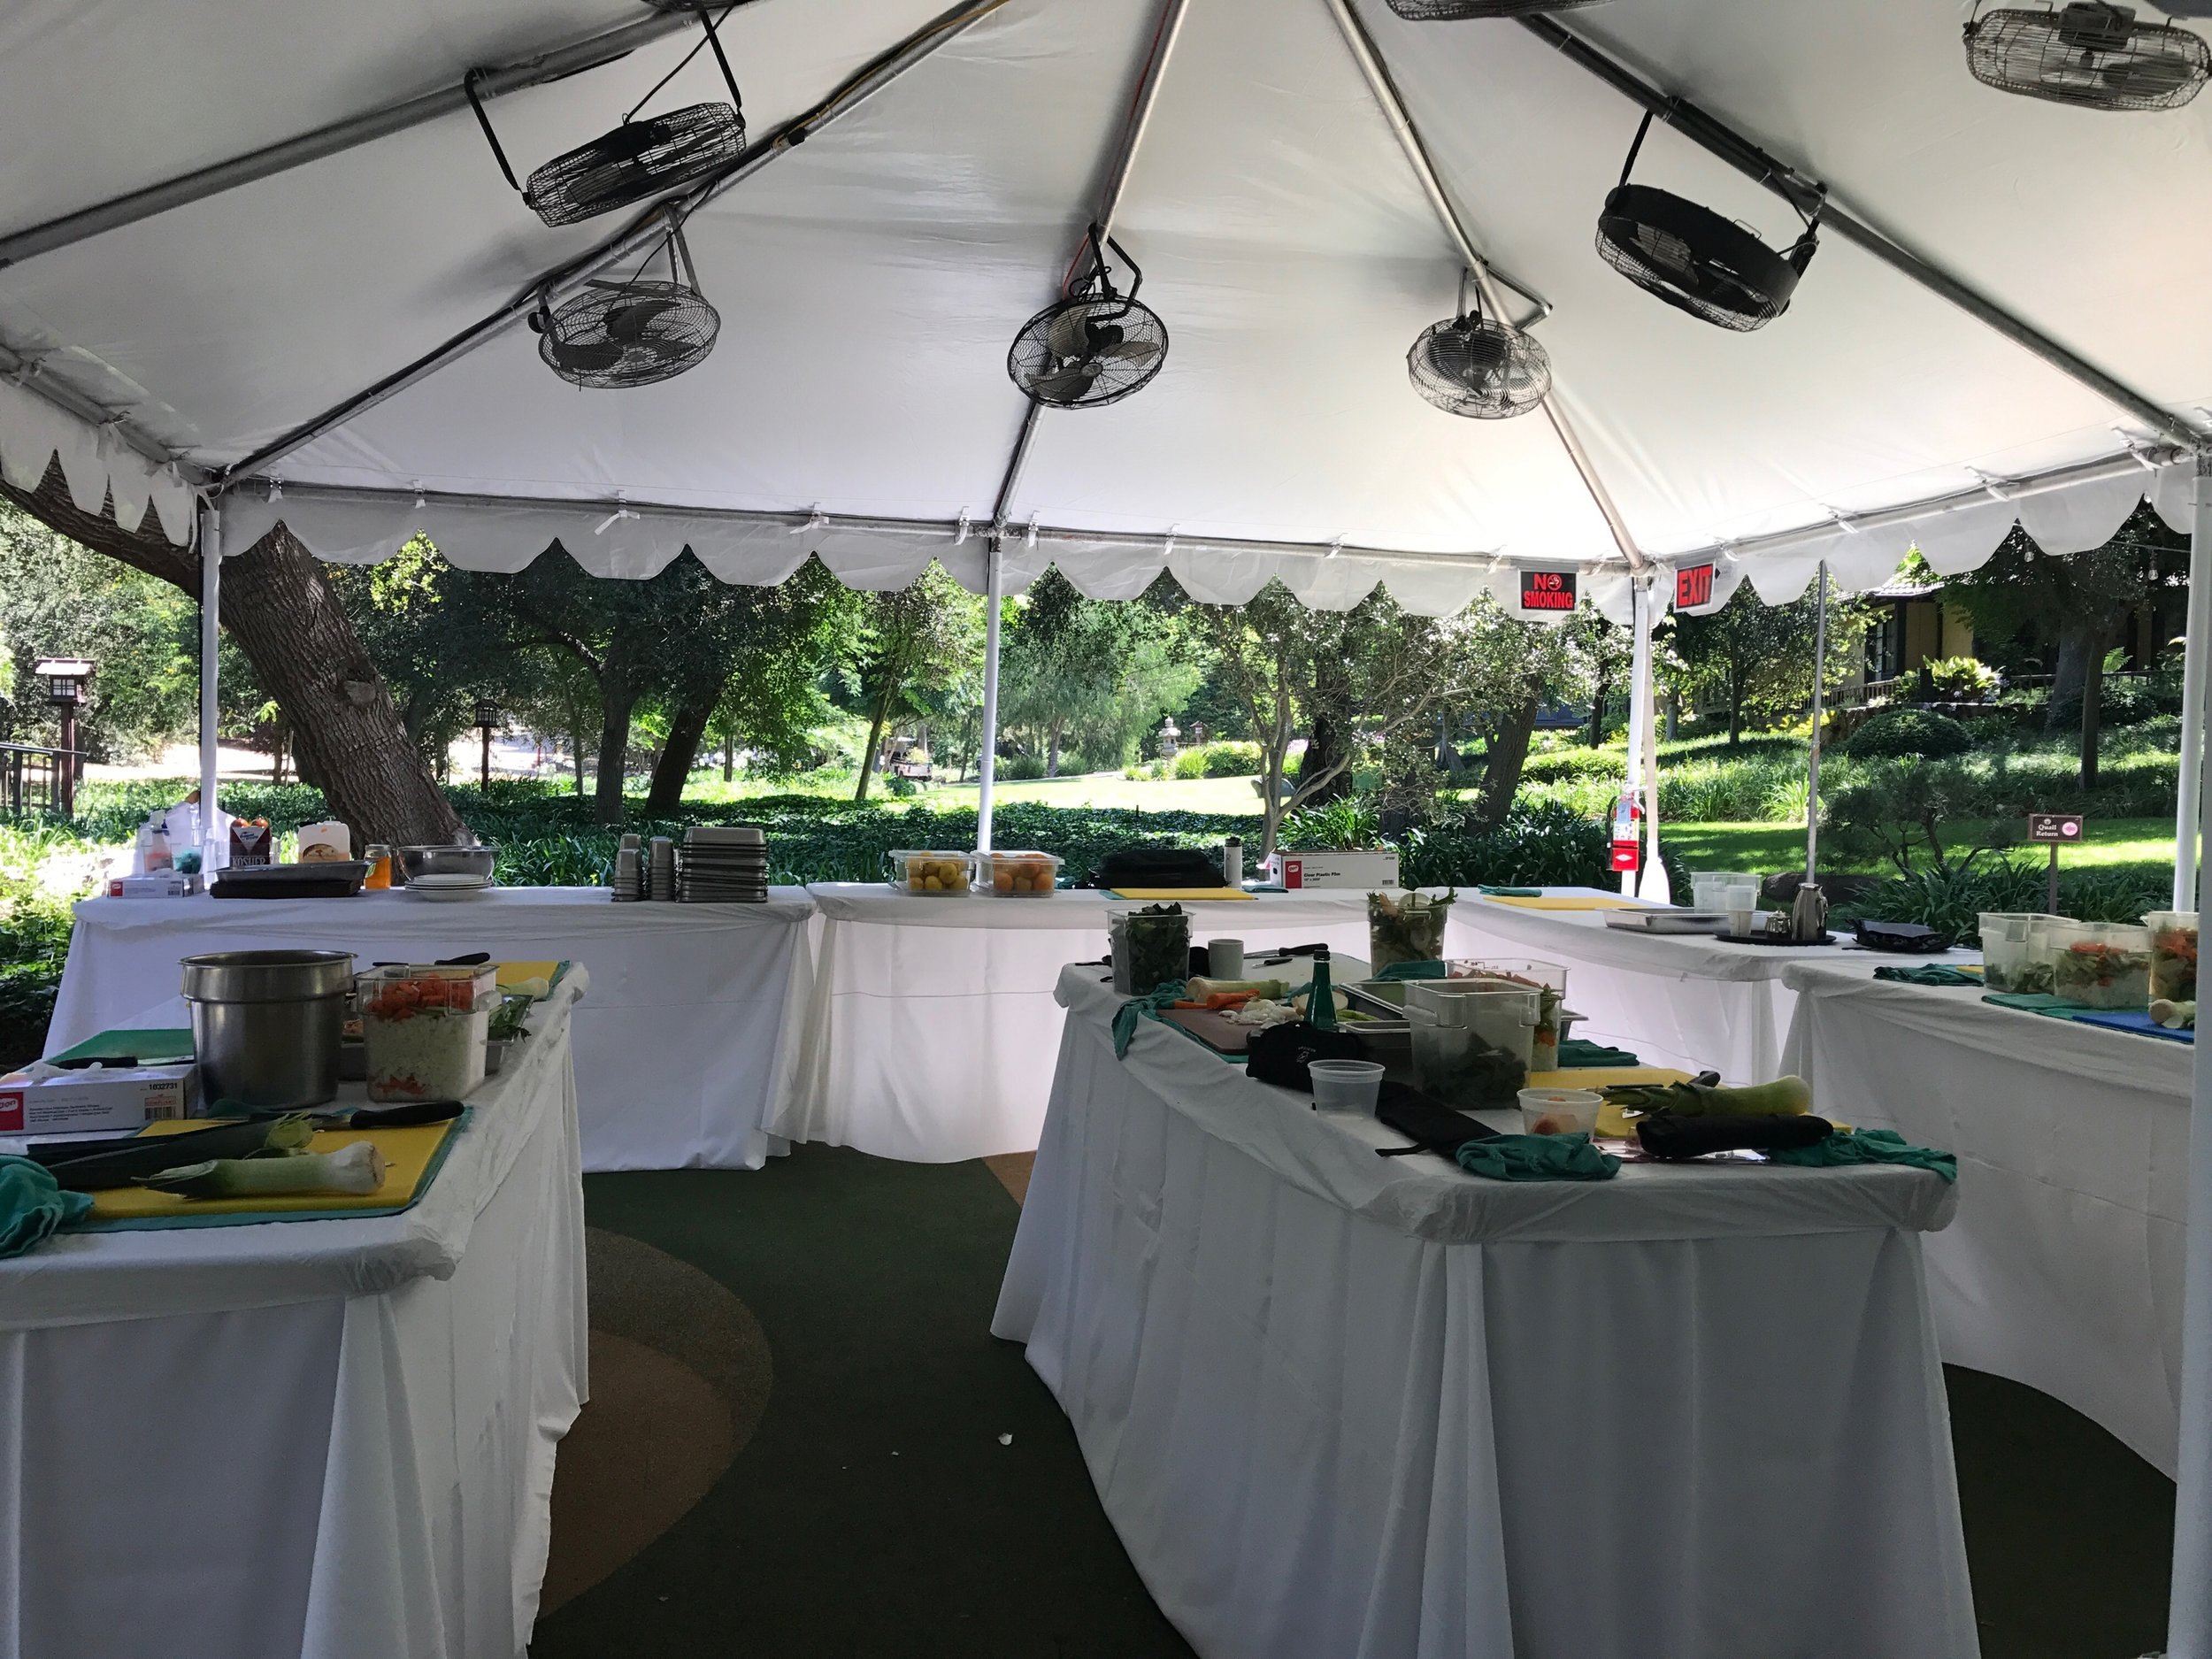 The outdoor kitchen where all of the classes were held.